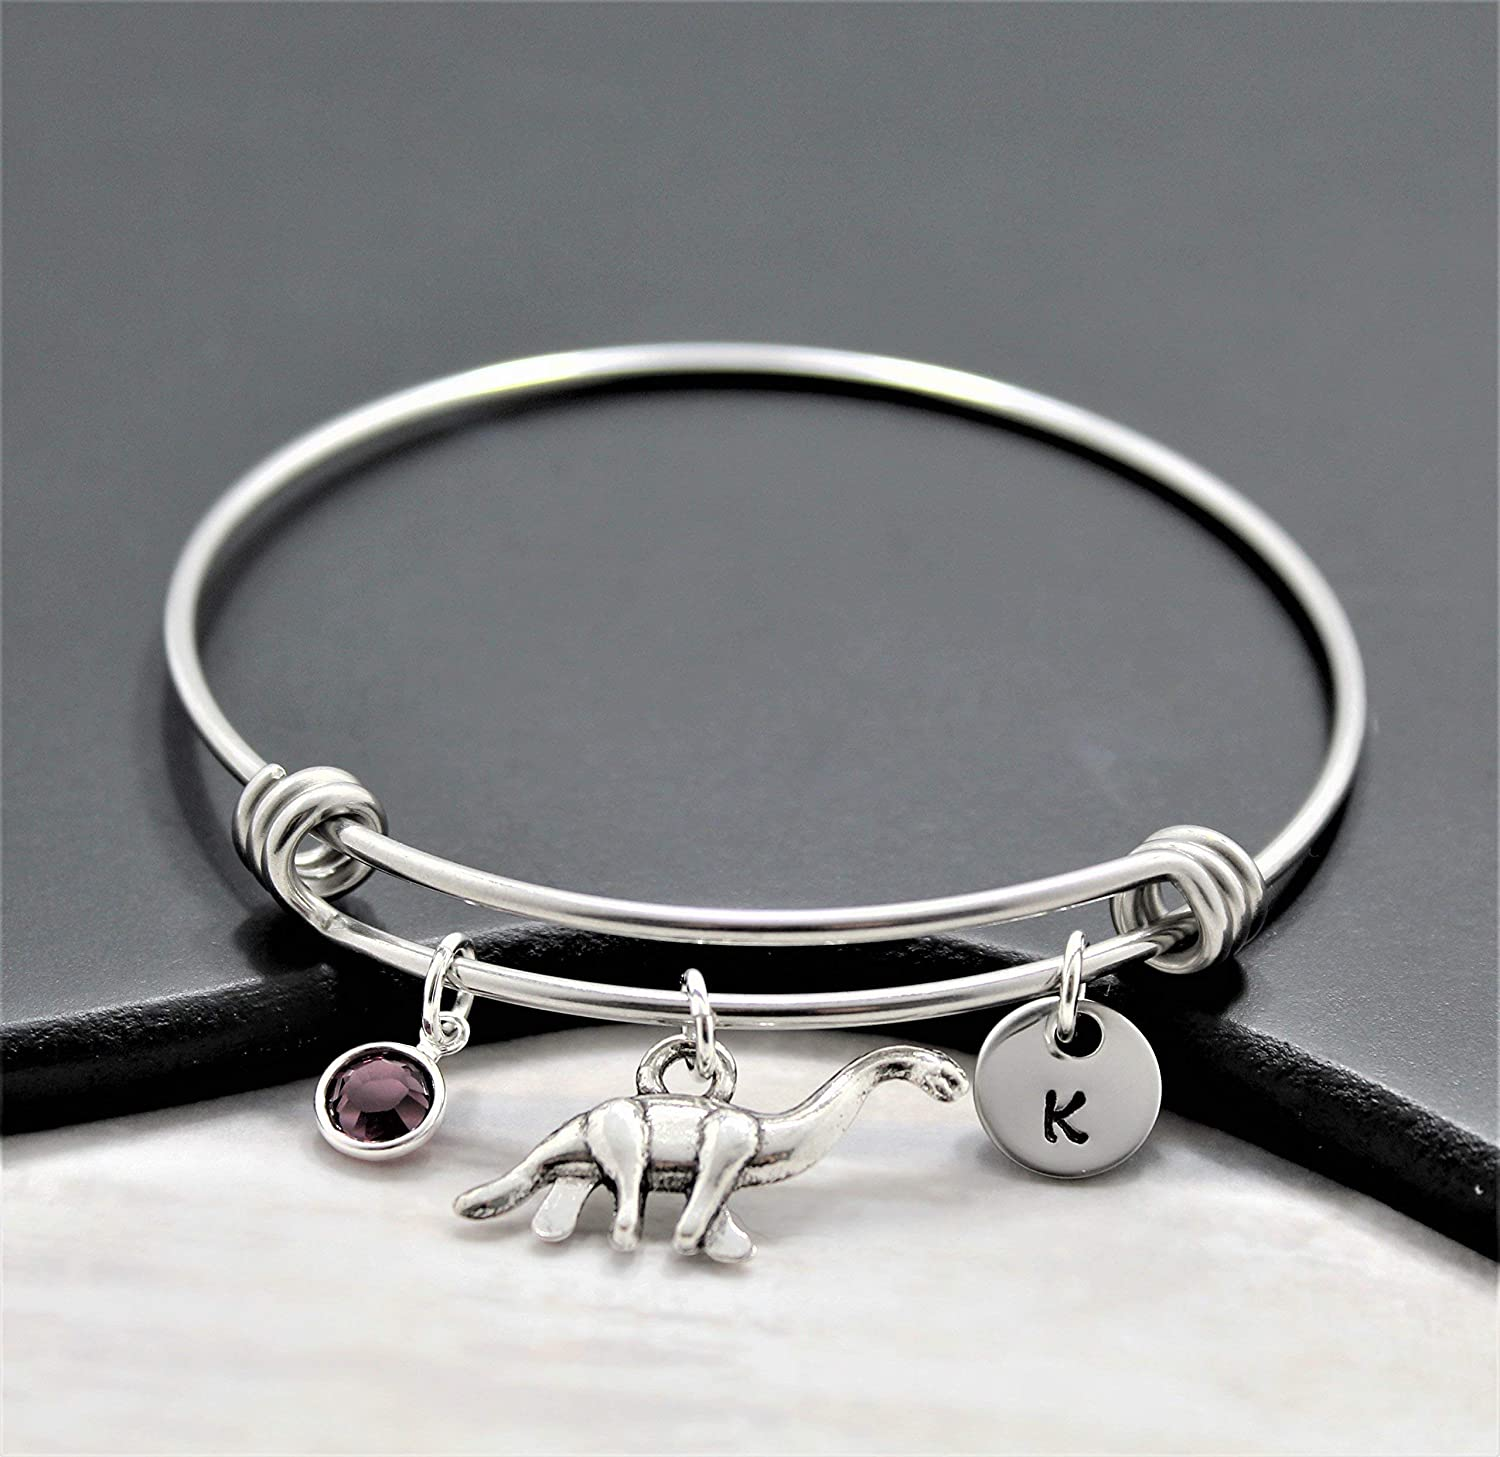 Dinosaur Bracelet - Birthday Gift Ideas Dino J A surprise price is realized Outlet SALE Silver